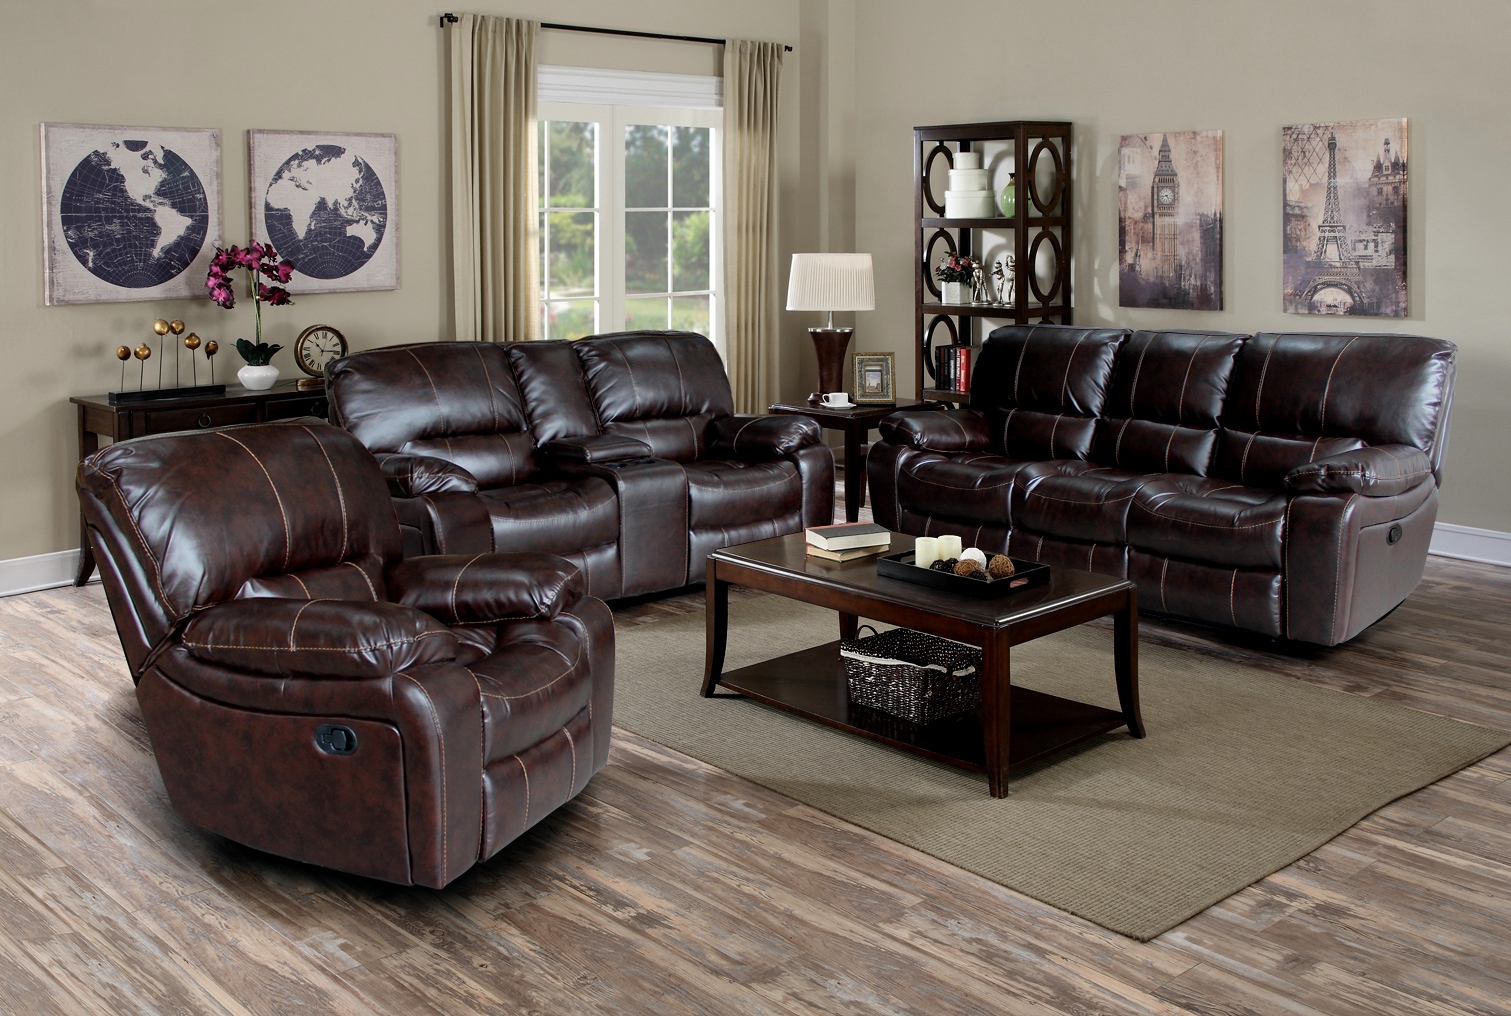 Plush Recliner Factory Direct Furniture Store America The